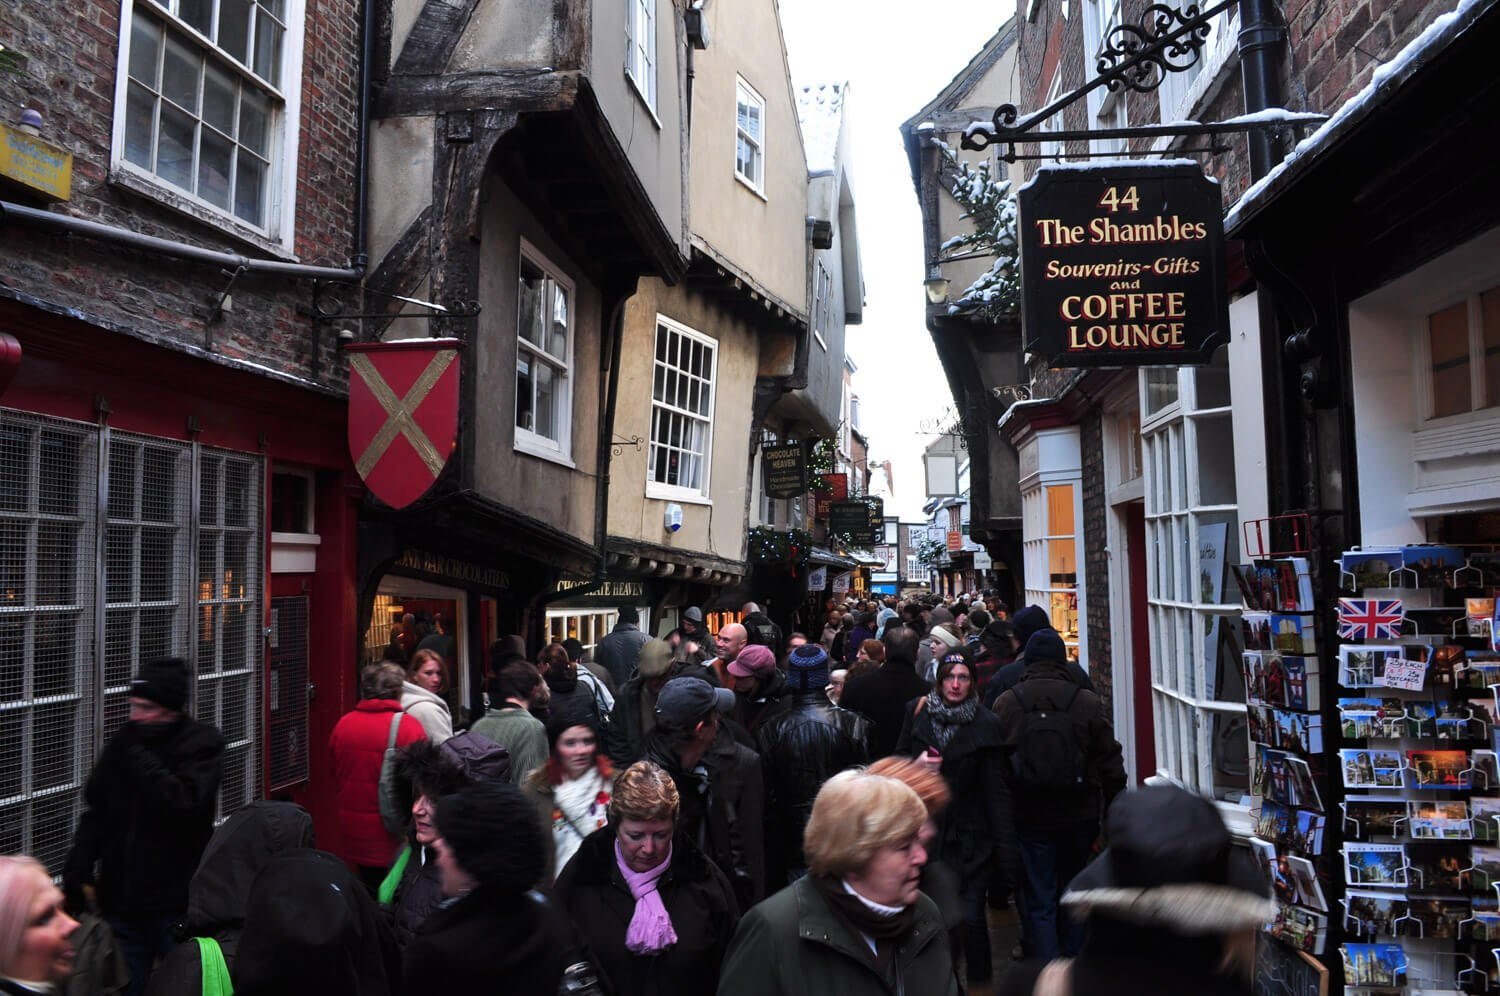 Harry Potter movie locations - York - JRMI